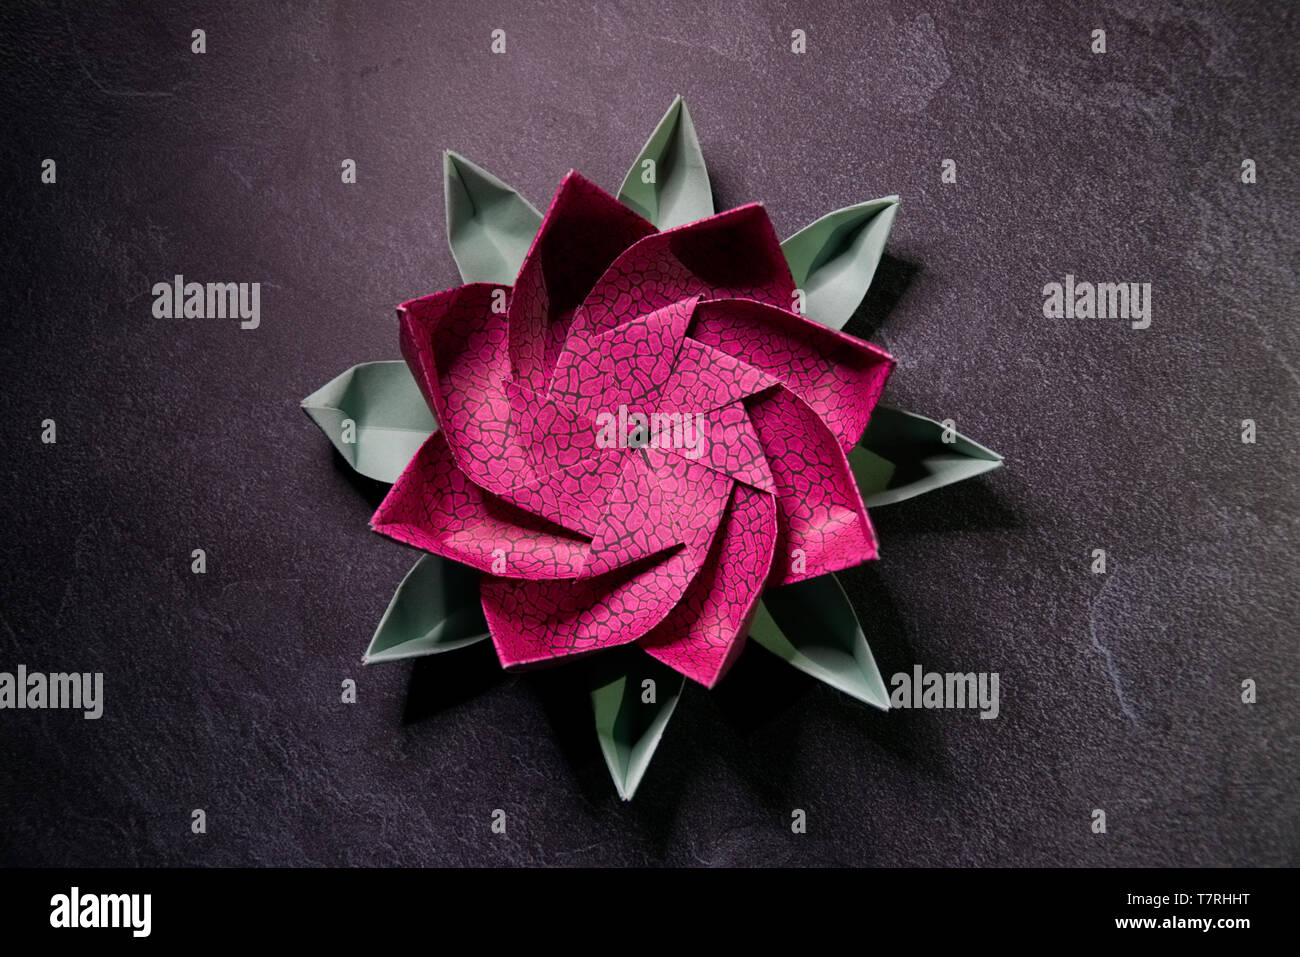 Pink Origami Lotus Flower Ars And Crafts Paper Art On Textured